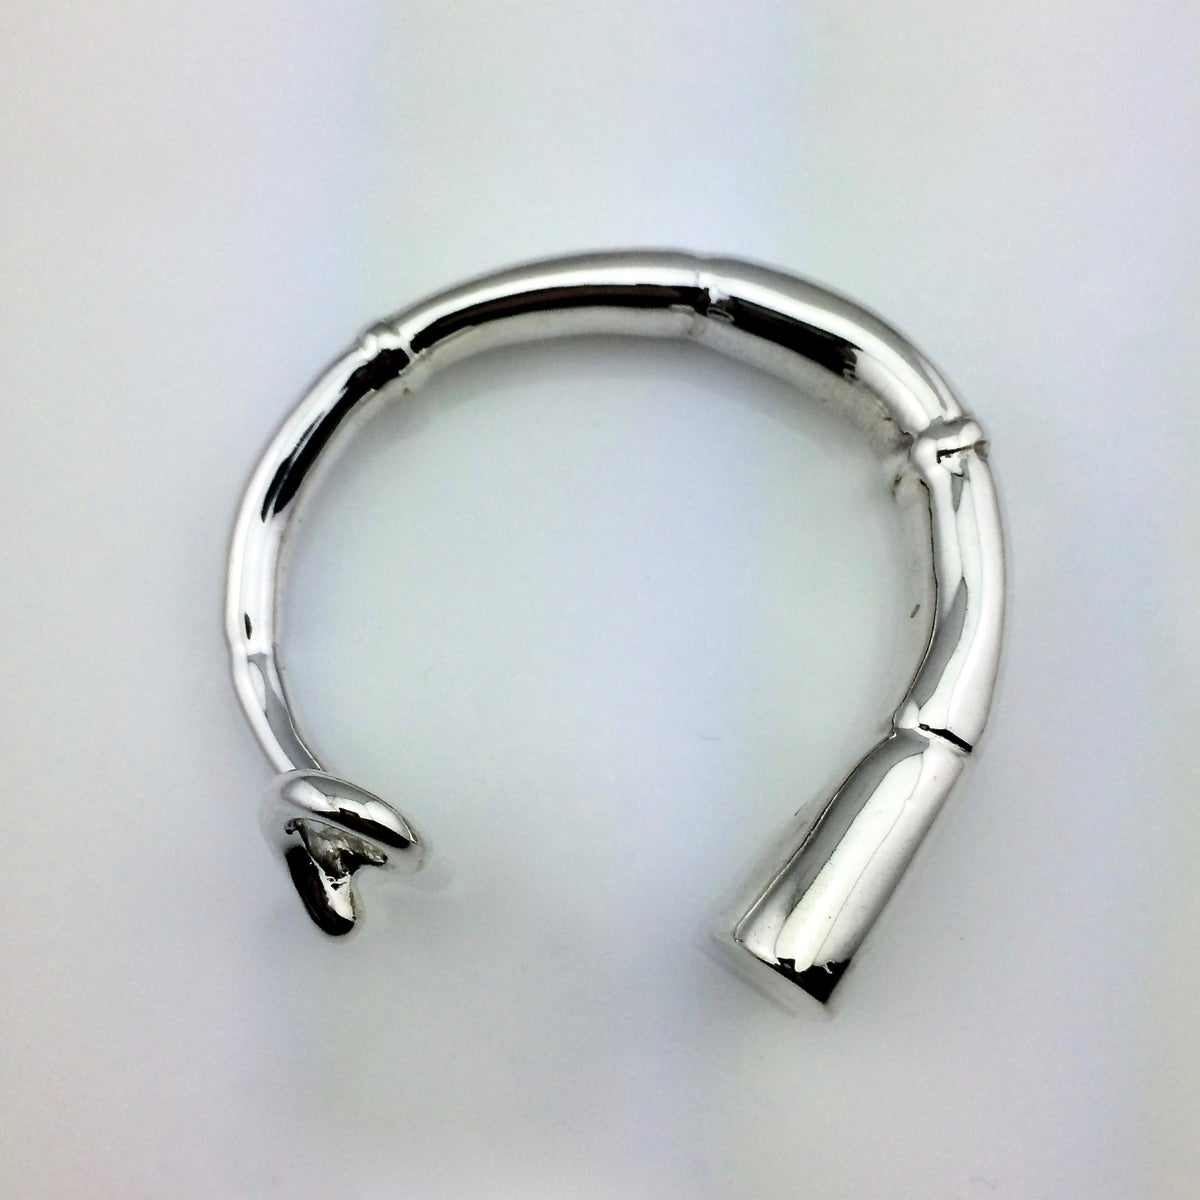 Image of SILVER TENDRIL CUFF BRACELET 04